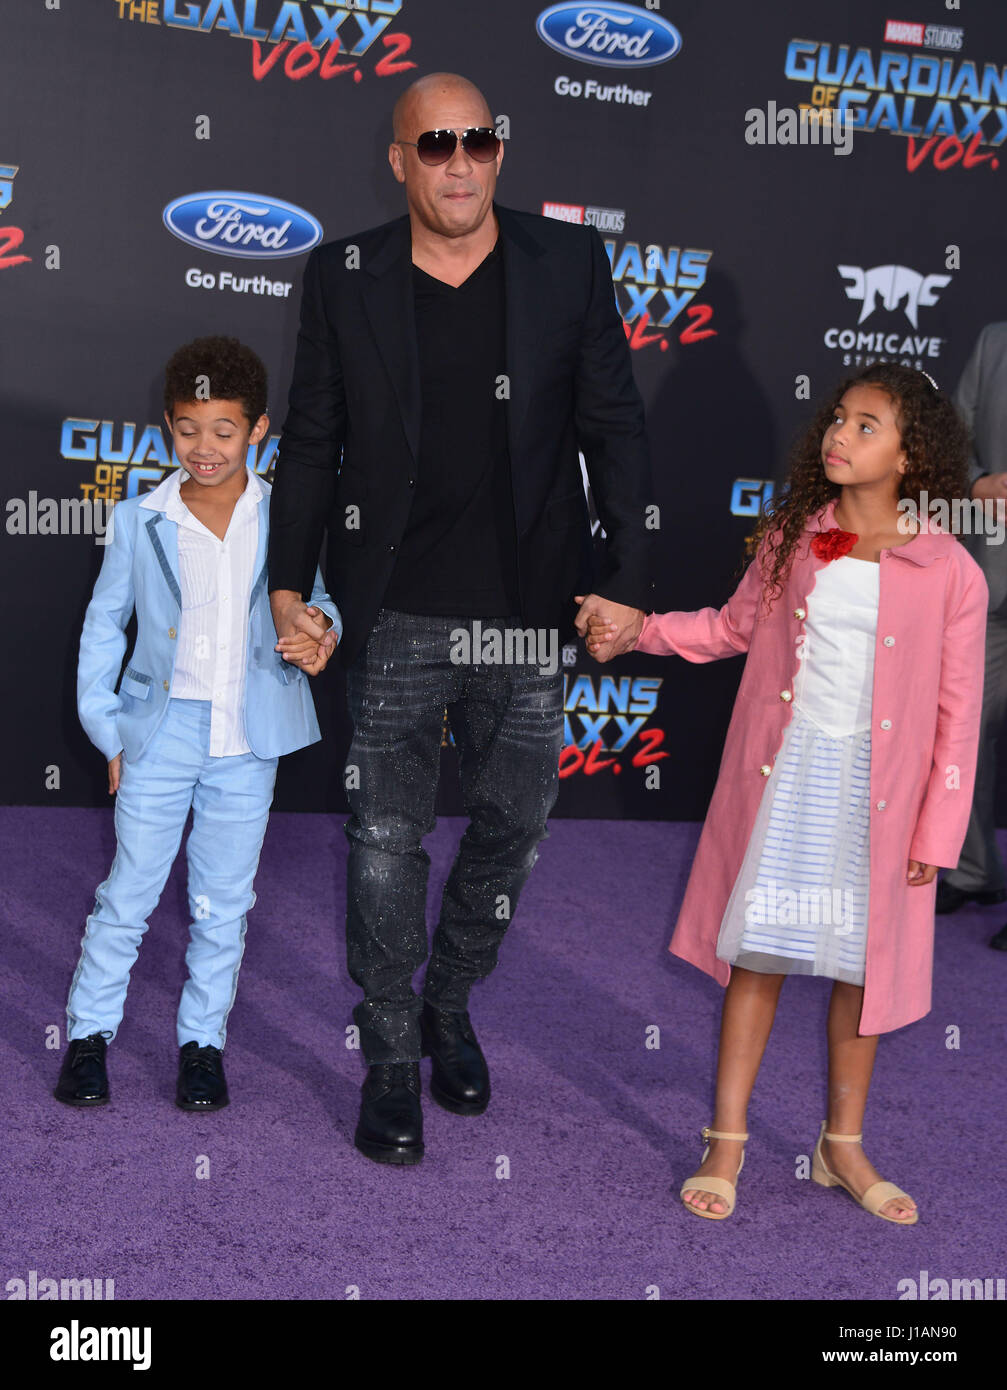 https://c8.alamy.com/comp/J1AN90/los-angeles-usa-18th-apr-2017-vin-diesel-daughter-hania-riley-sinclair-J1AN90.jpg Vin Diesel Daughter 2017